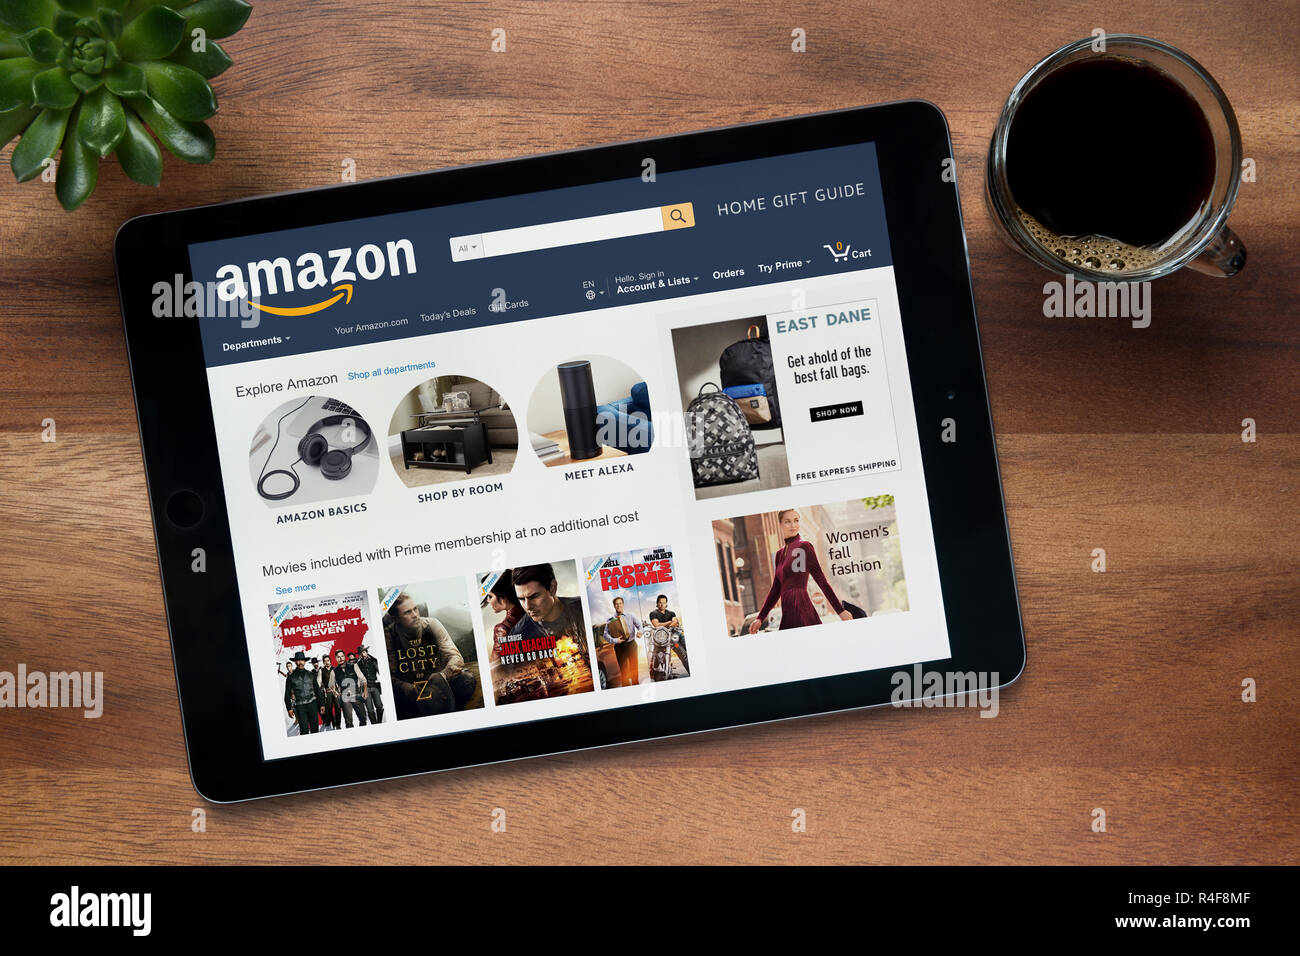 The website of Amazon is seen on an iPad tablet, on a wooden table along with an espresso coffee and a house plant (Editorial use only). - Stock Image